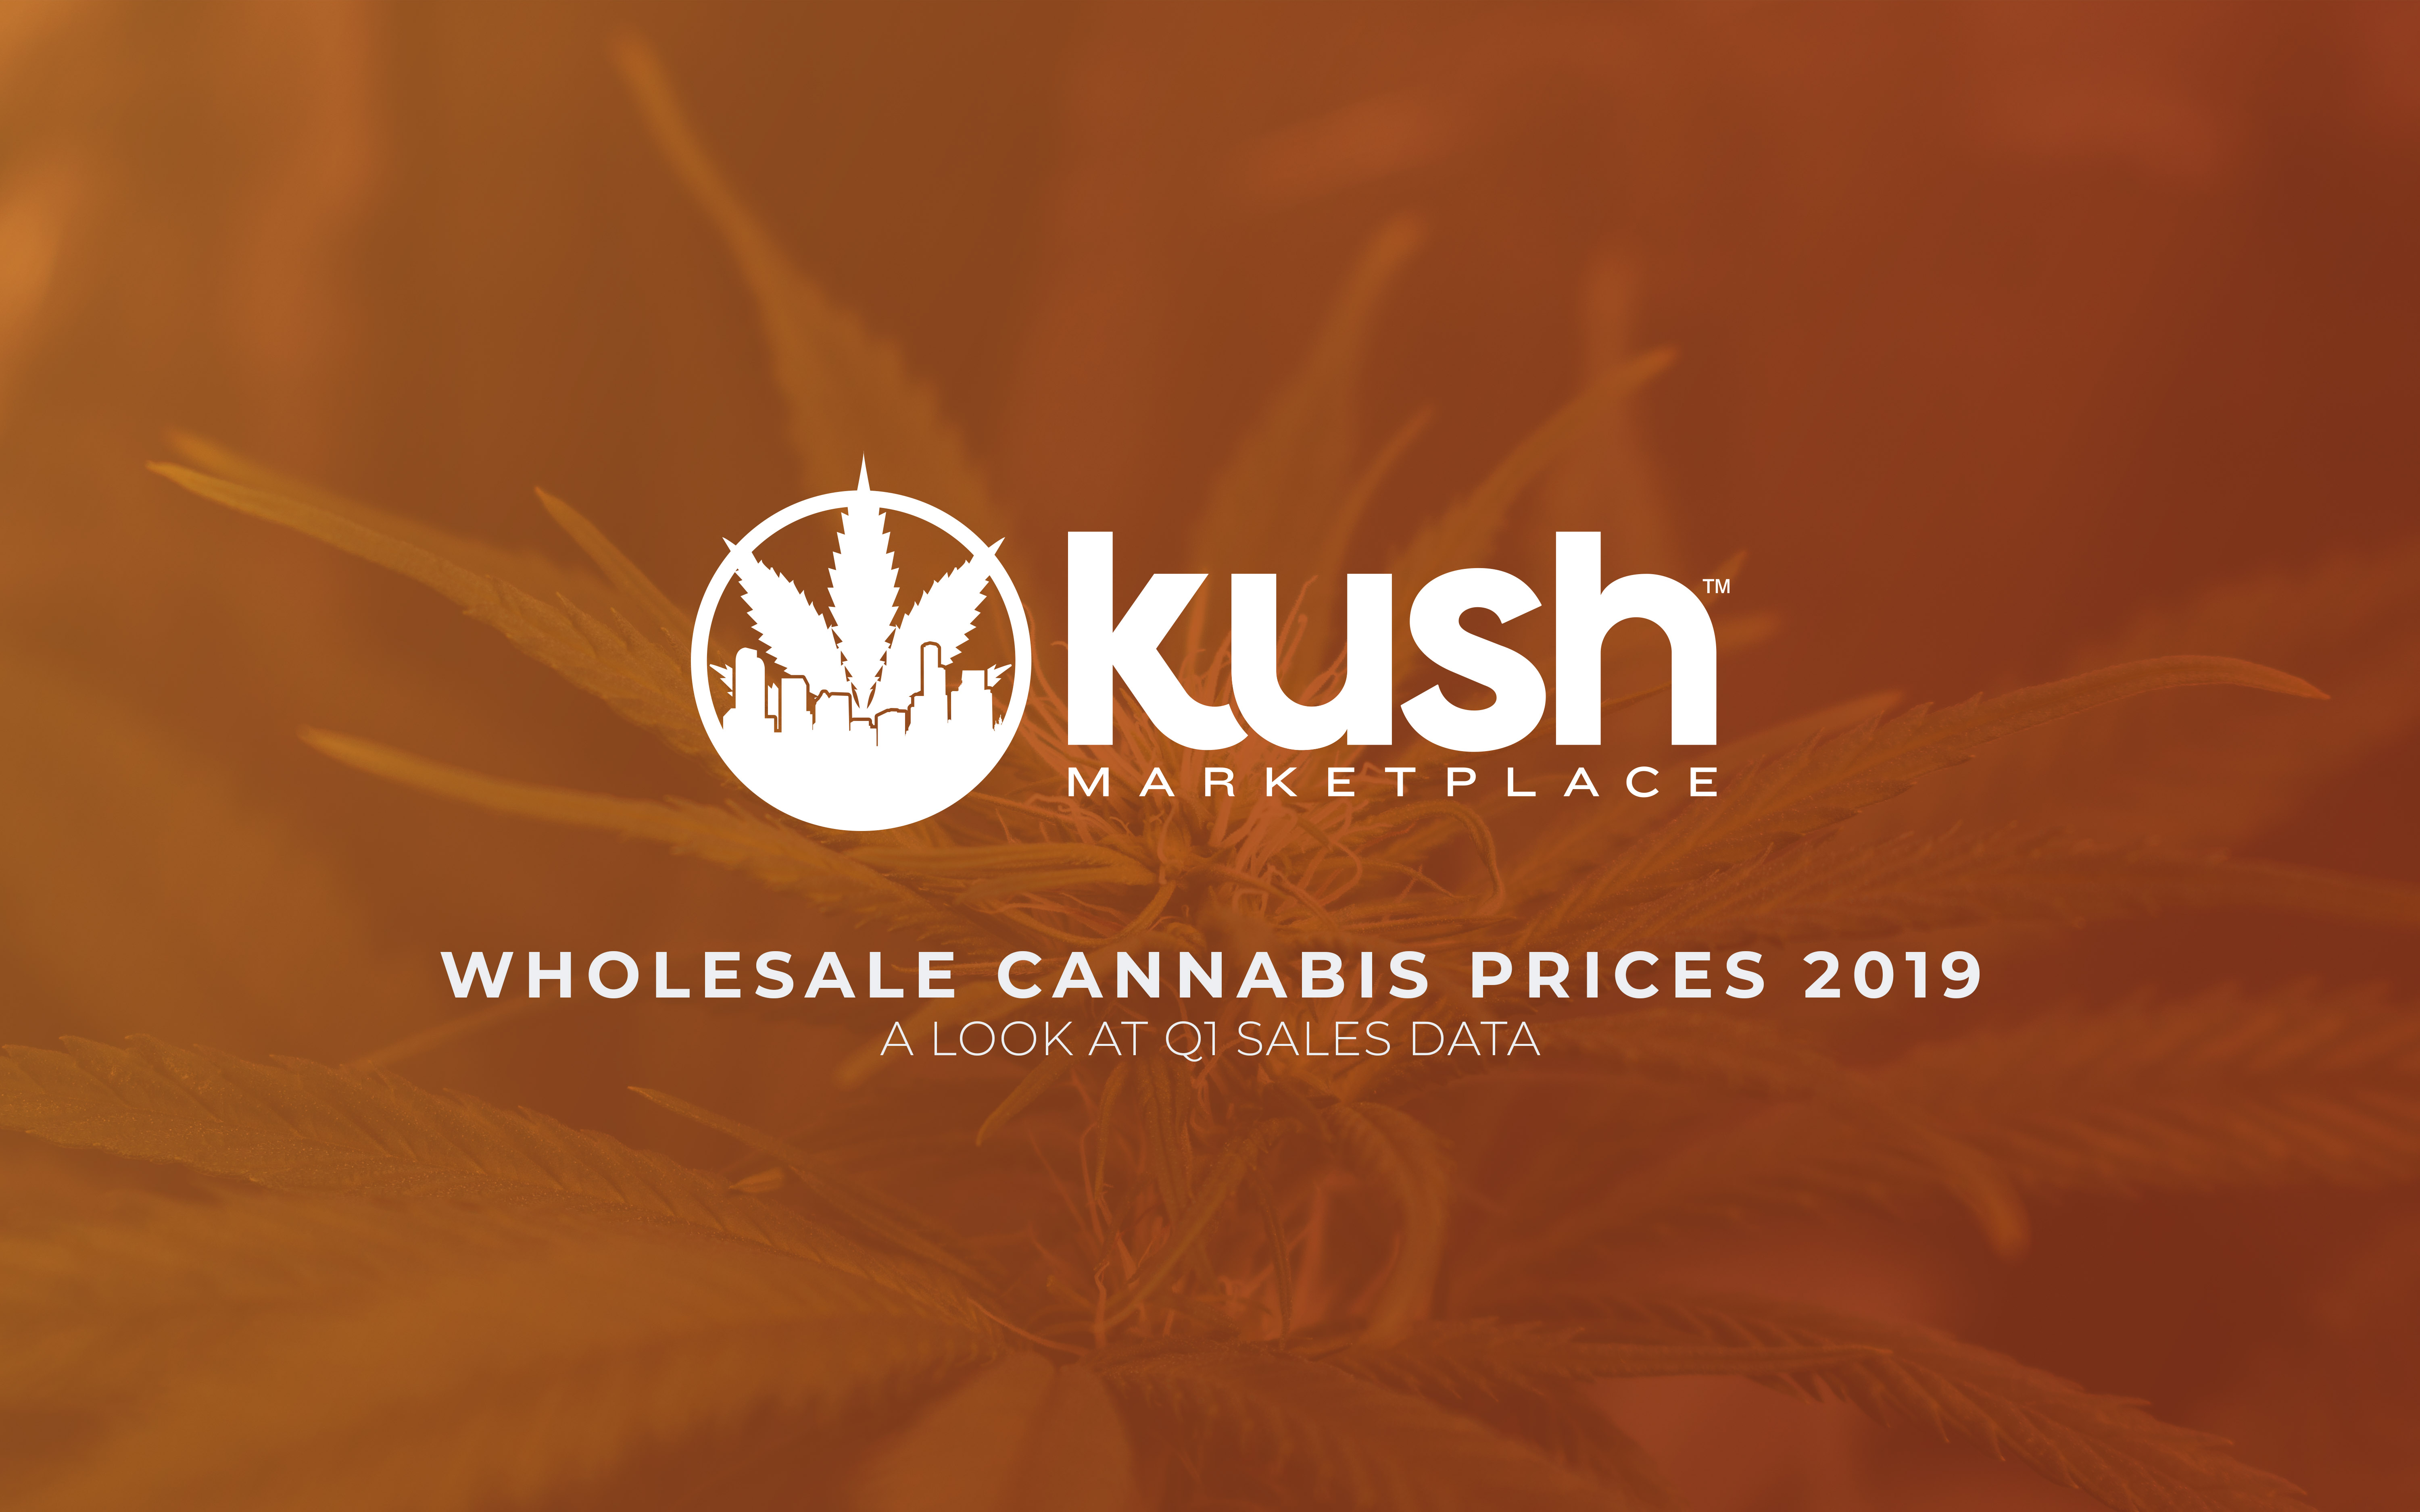 Wholesale Cannabis Prices 2019: A Look at Q1 Sales Data | Kush com